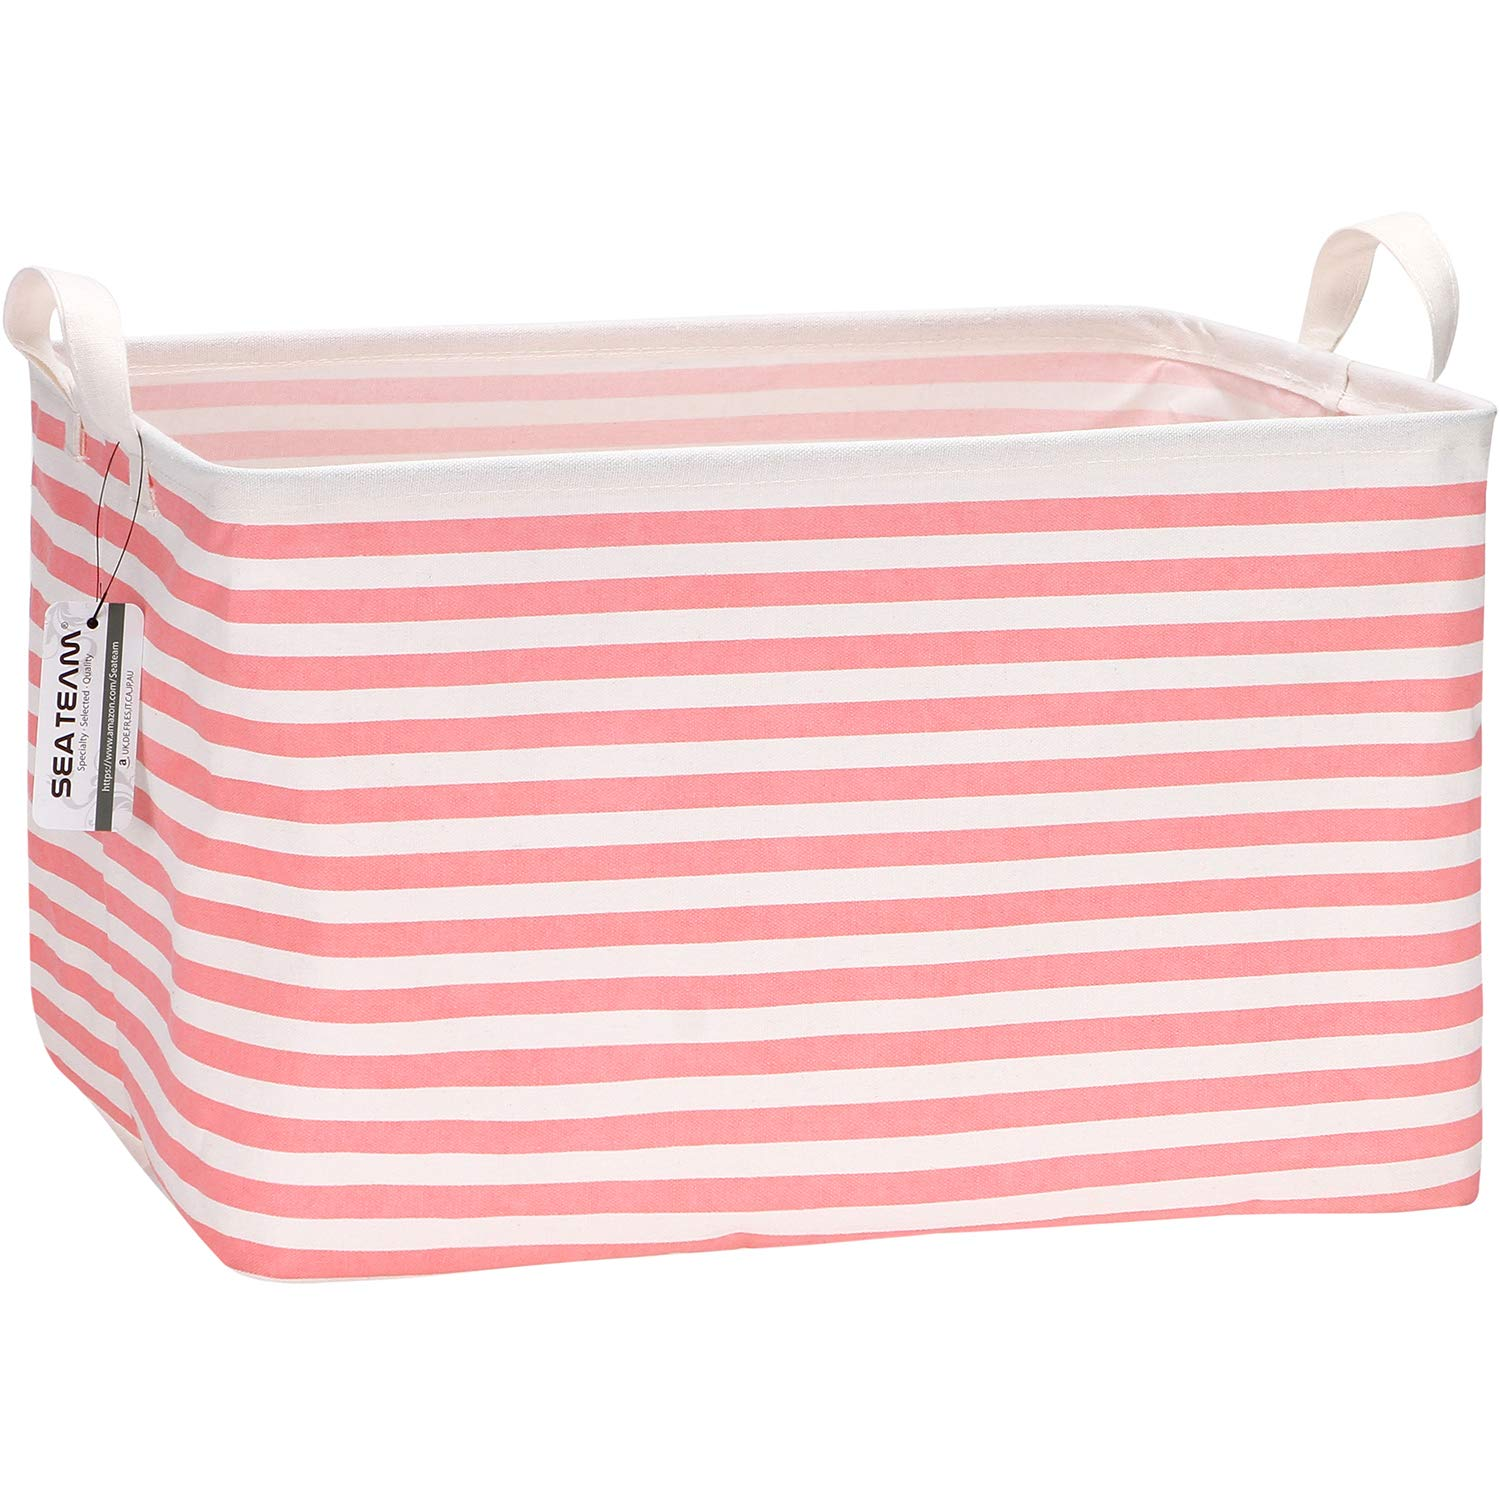 Sea Team 16.5 x 11.8 x 9.8 inches Square Canvas Fabric Storage Bins Shelves Storage Baskets Organizers for Nursery & Kid's Room, Pink Stripe